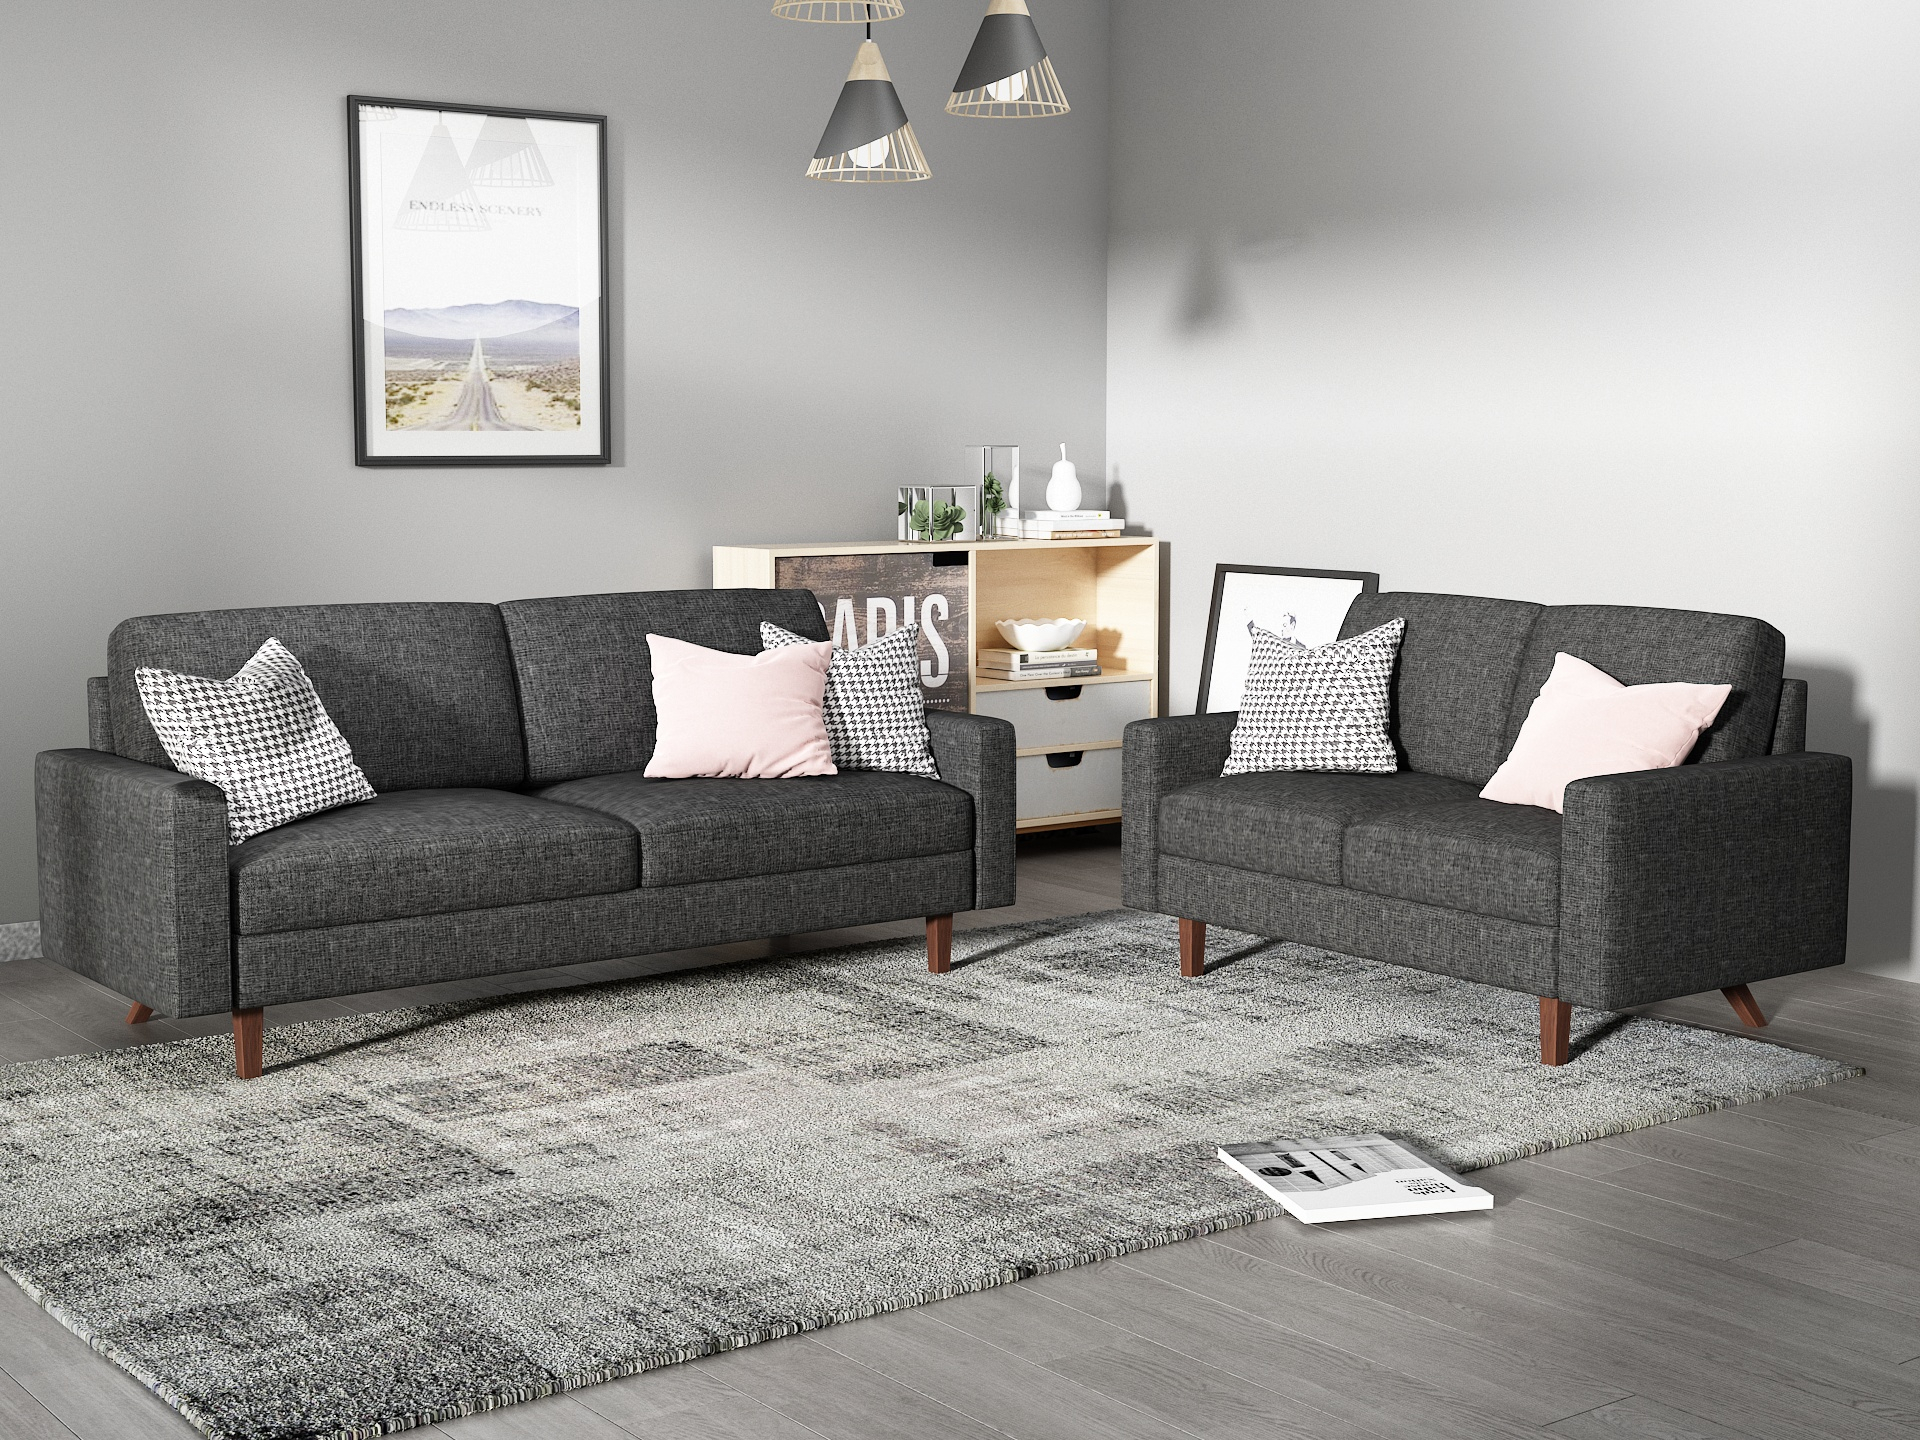 Us Pride Furniture Elvin 2 Piece Linen Fabric Living Room Throughout Sofa With Chairs (View 8 of 15)